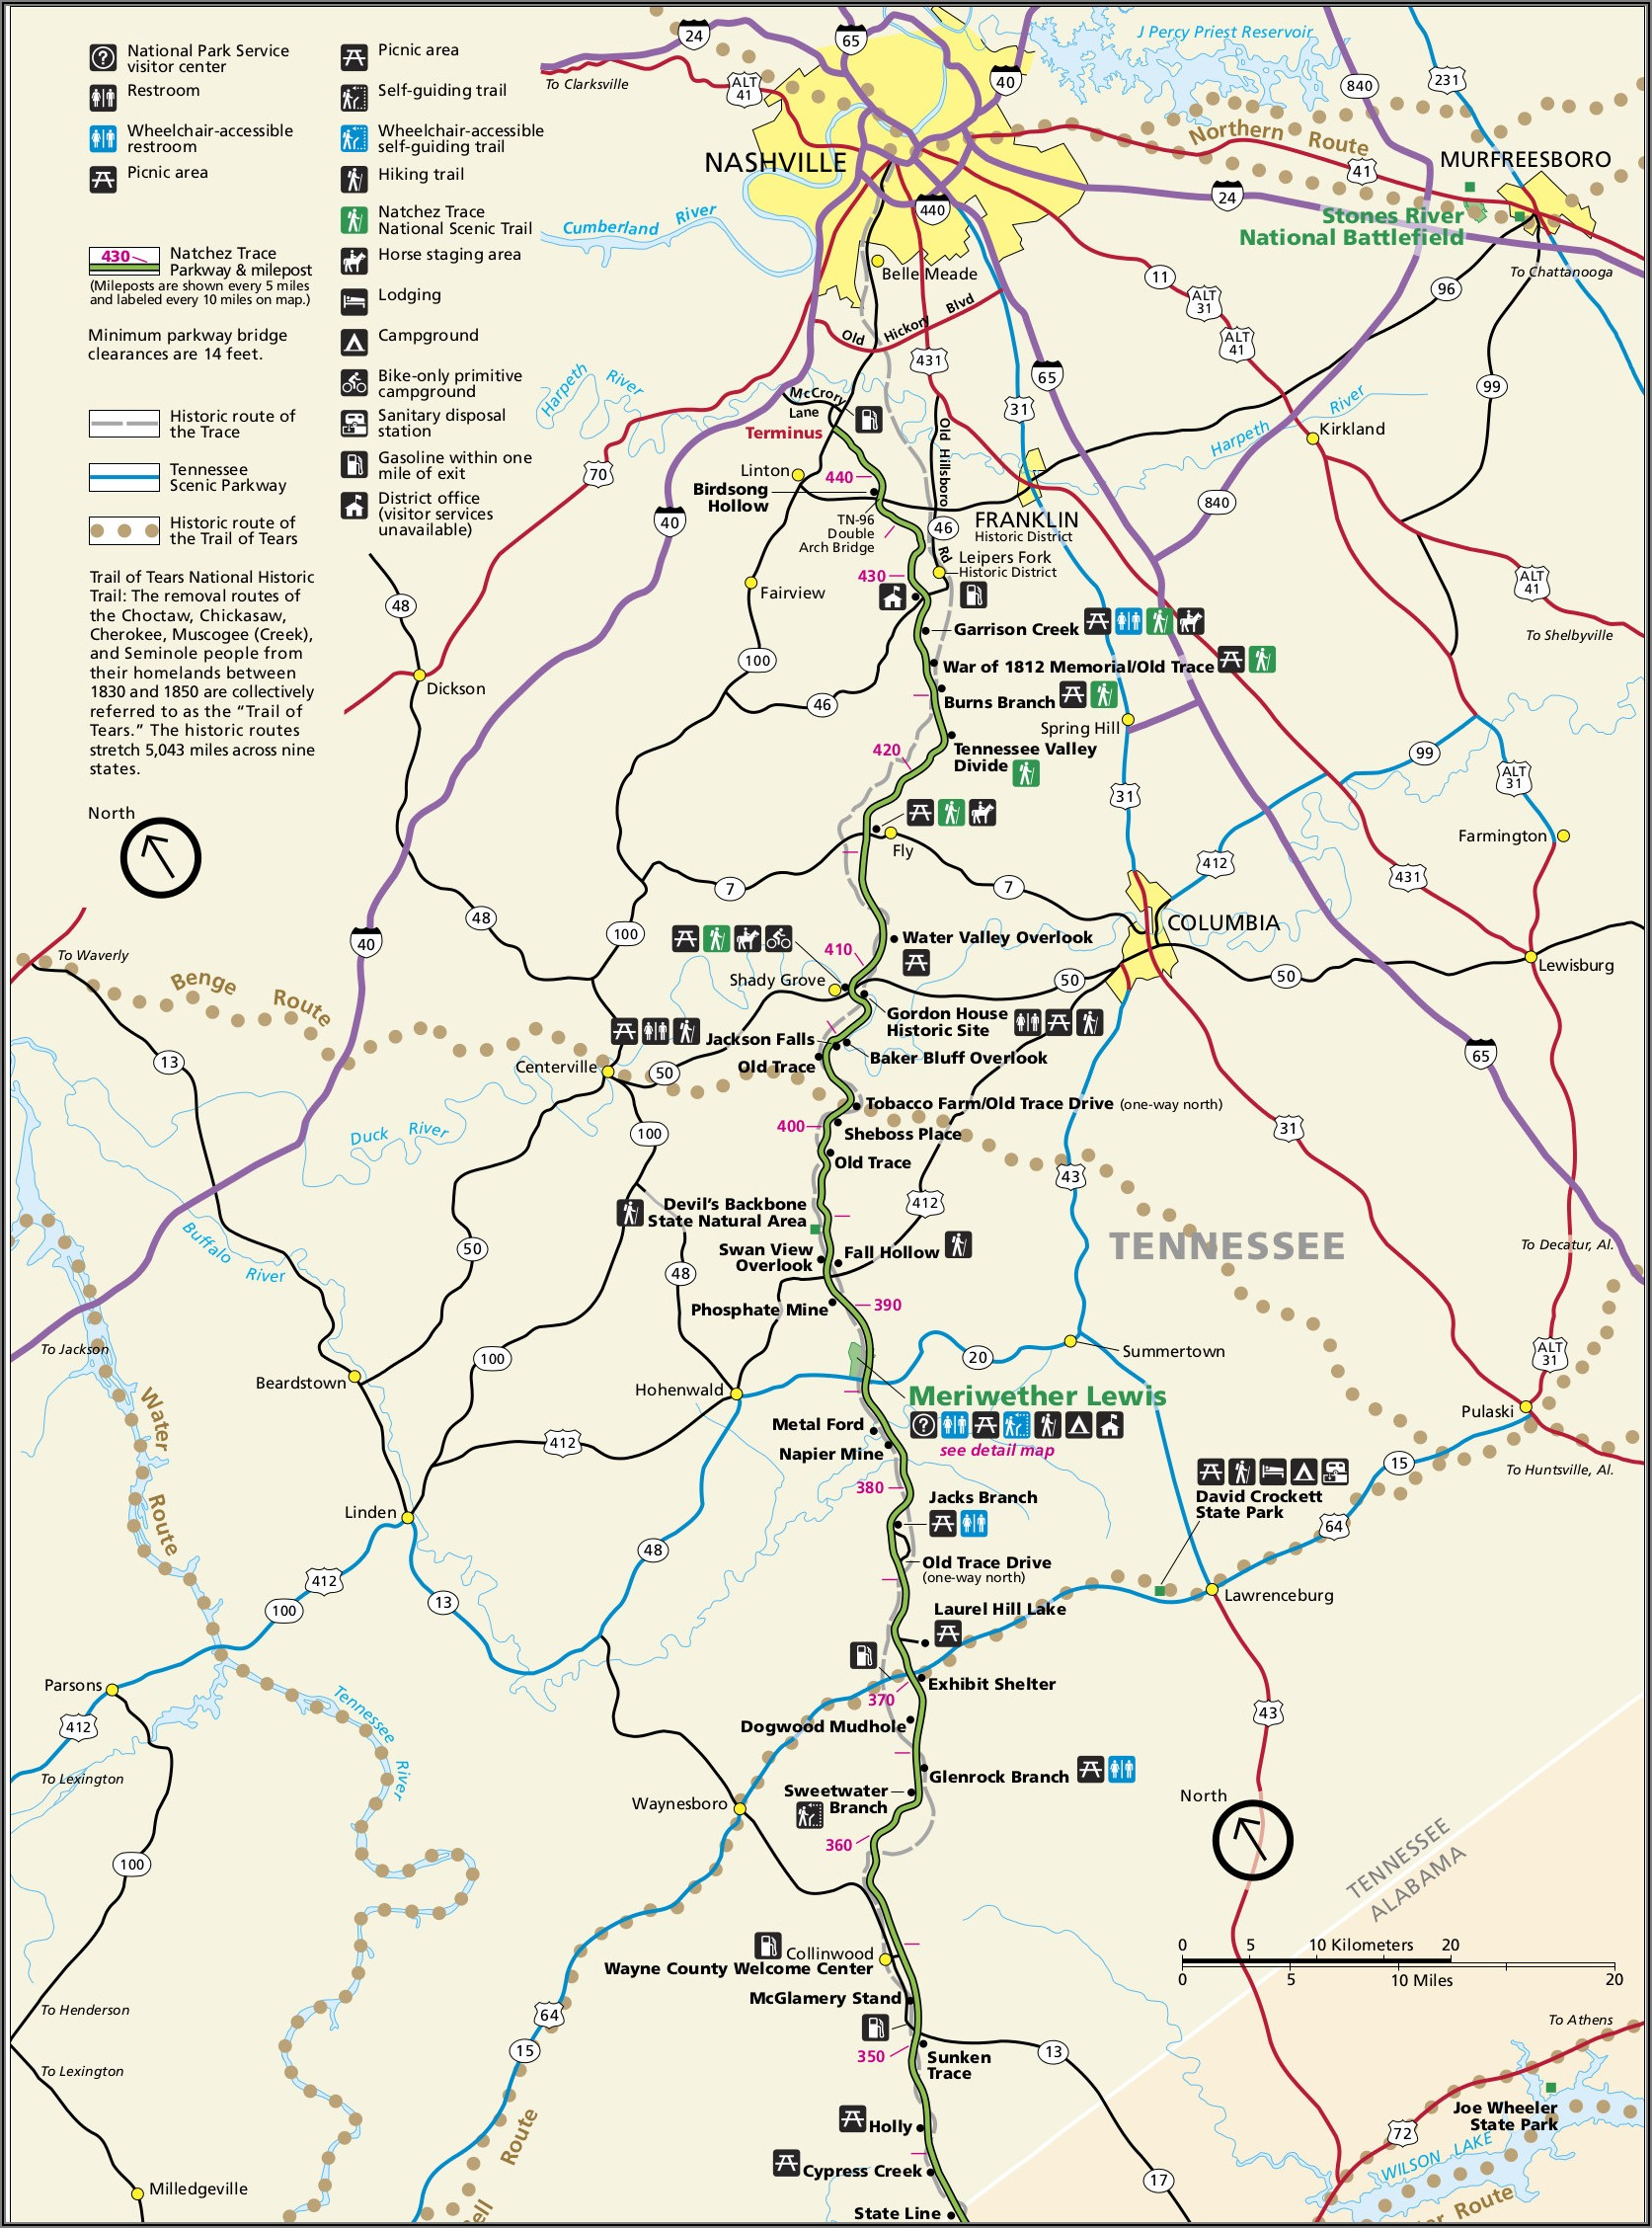 Natchez Trace Parkway Map And Guide